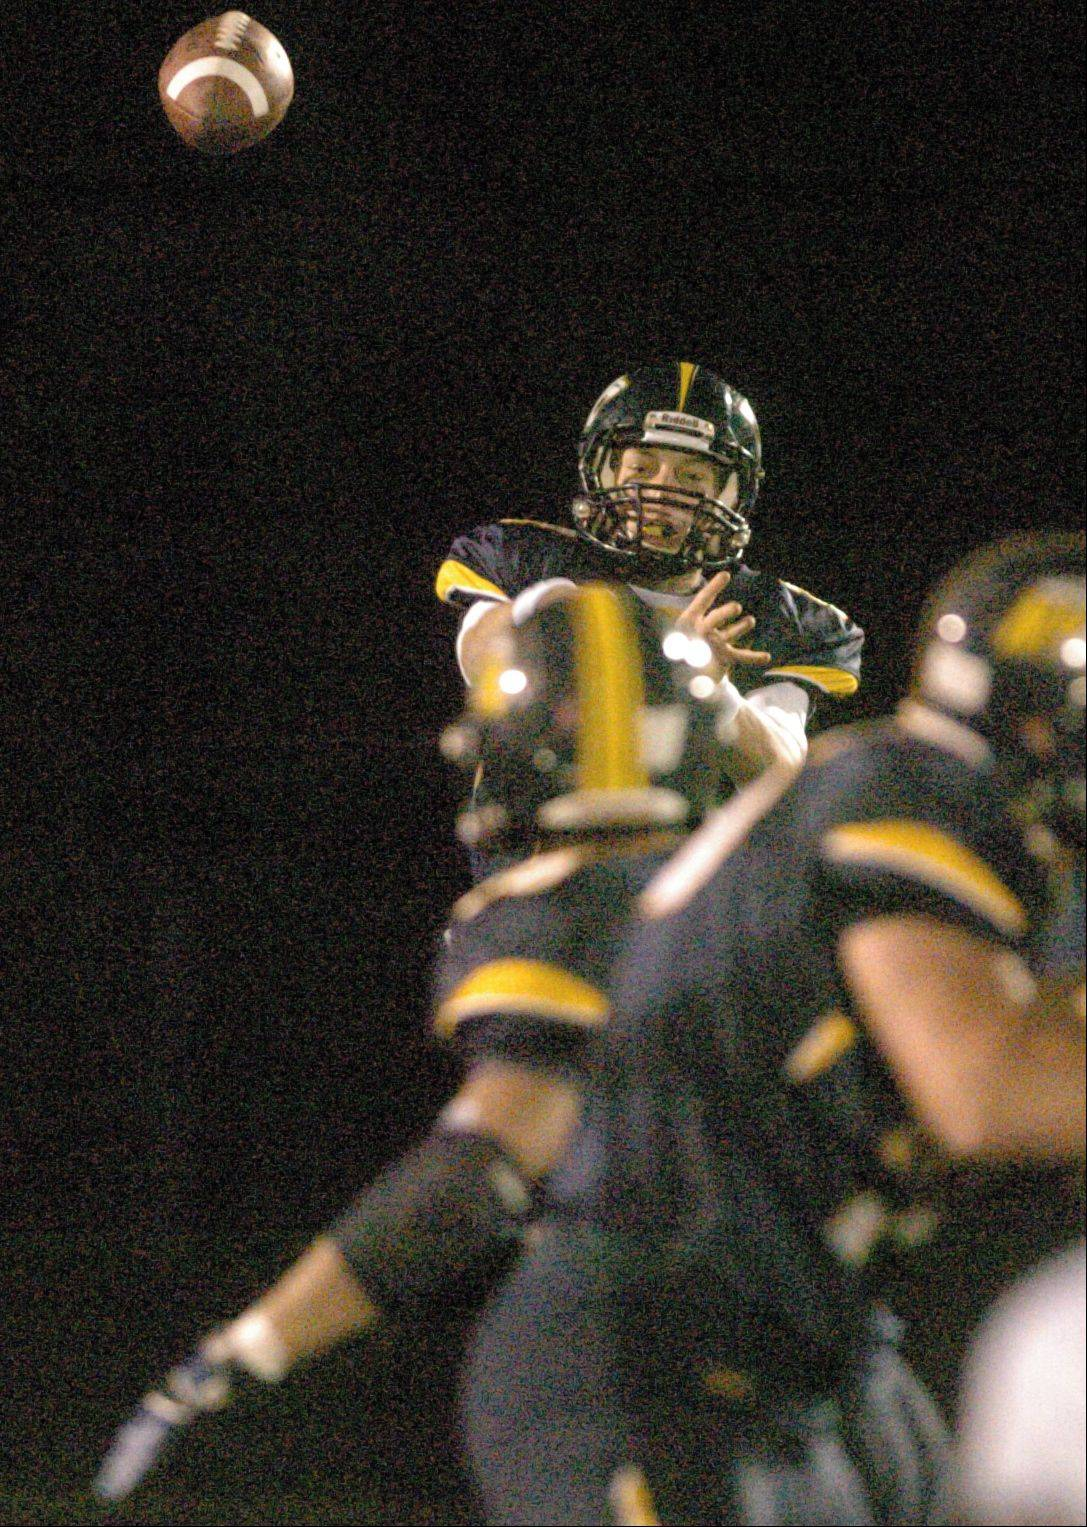 Neuqua Valley High School hosted Naperville North High School in Week 1 of the IHSA Class 8A football playoffs Friday night at Neuqua Valley High School in Naperville.